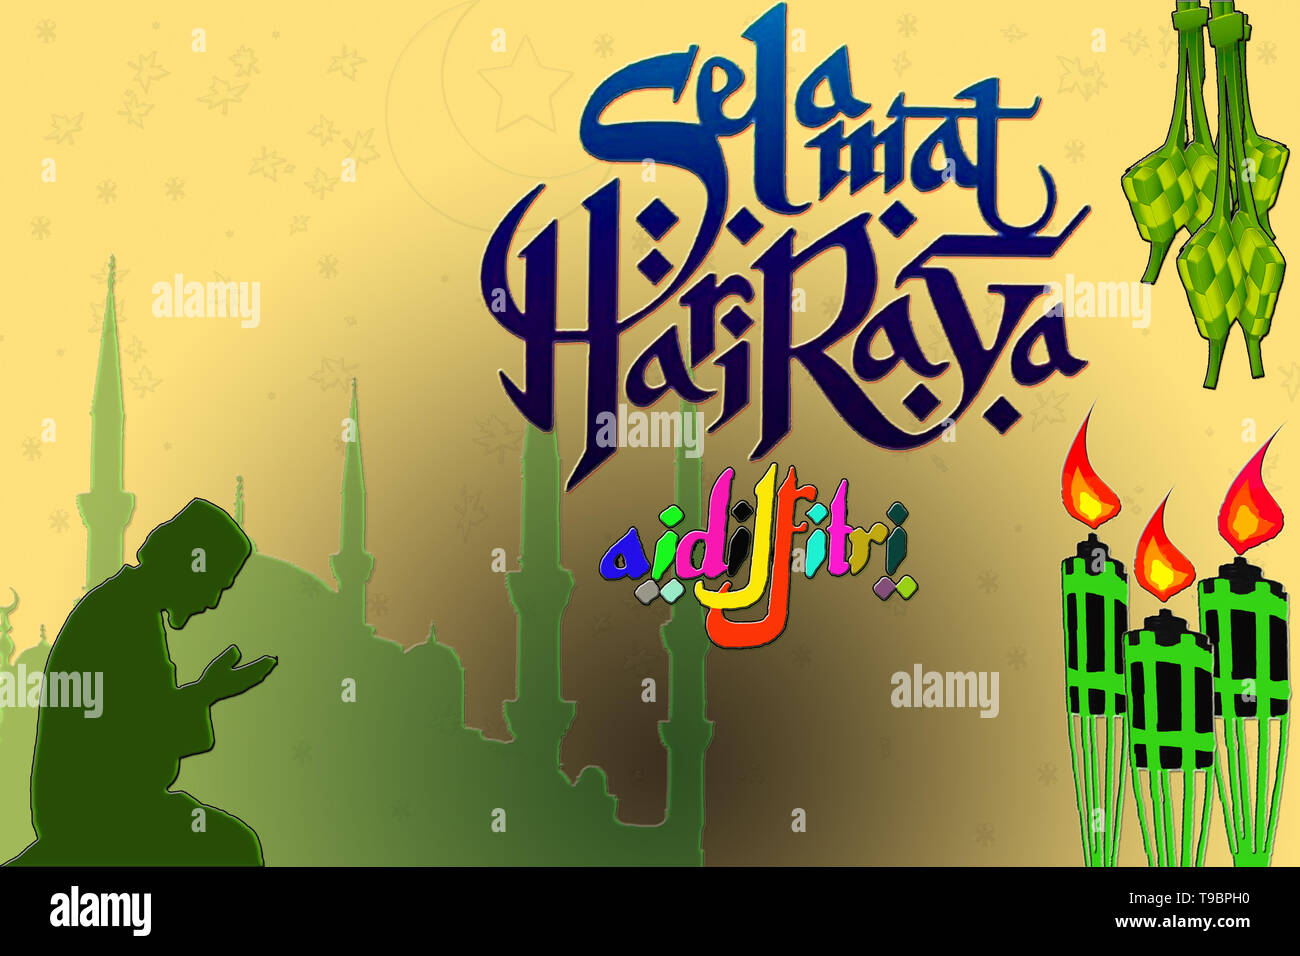 Hari Raya Aidilfitri High Resolution Stock Photography And Images Alamy